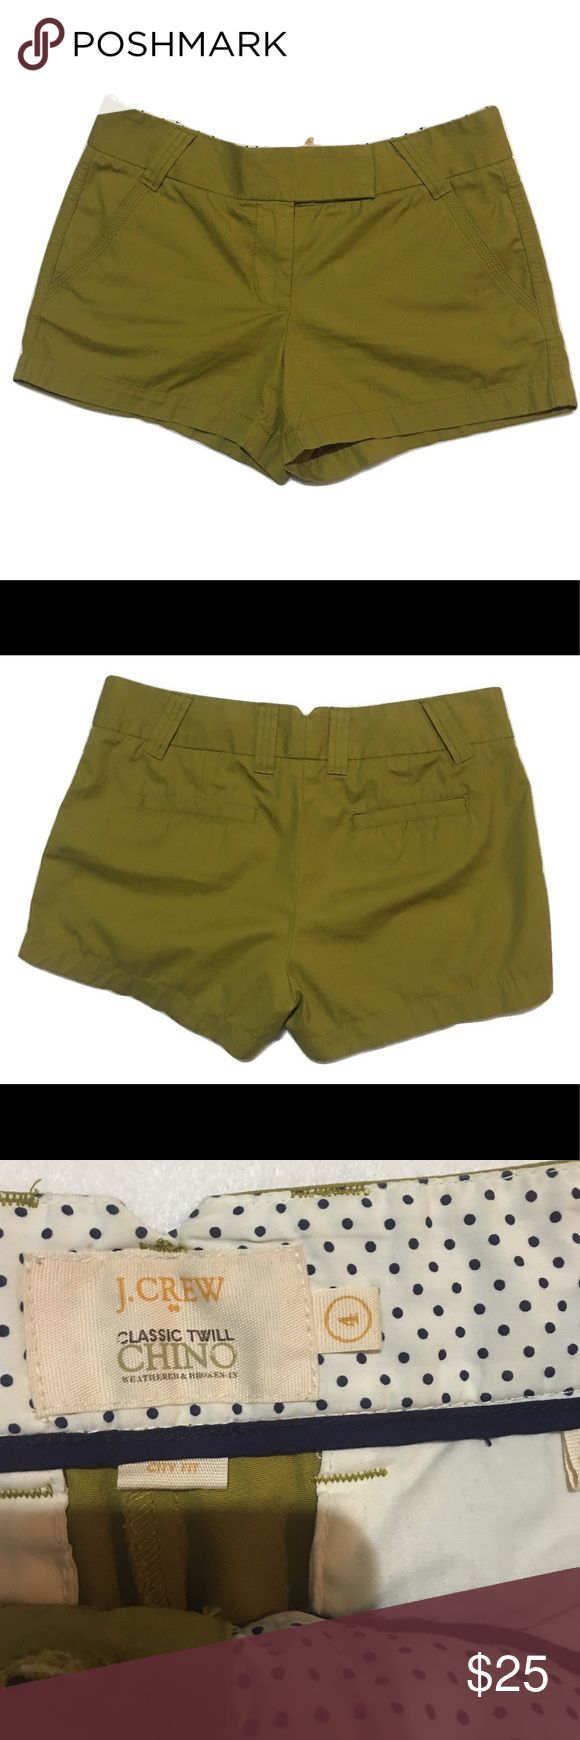 """J. Crew chino dark Olive green shorts size 4 Size 4! Excellent condition! Inseam is 3""""! J. Crew Shorts Jean Shorts"""